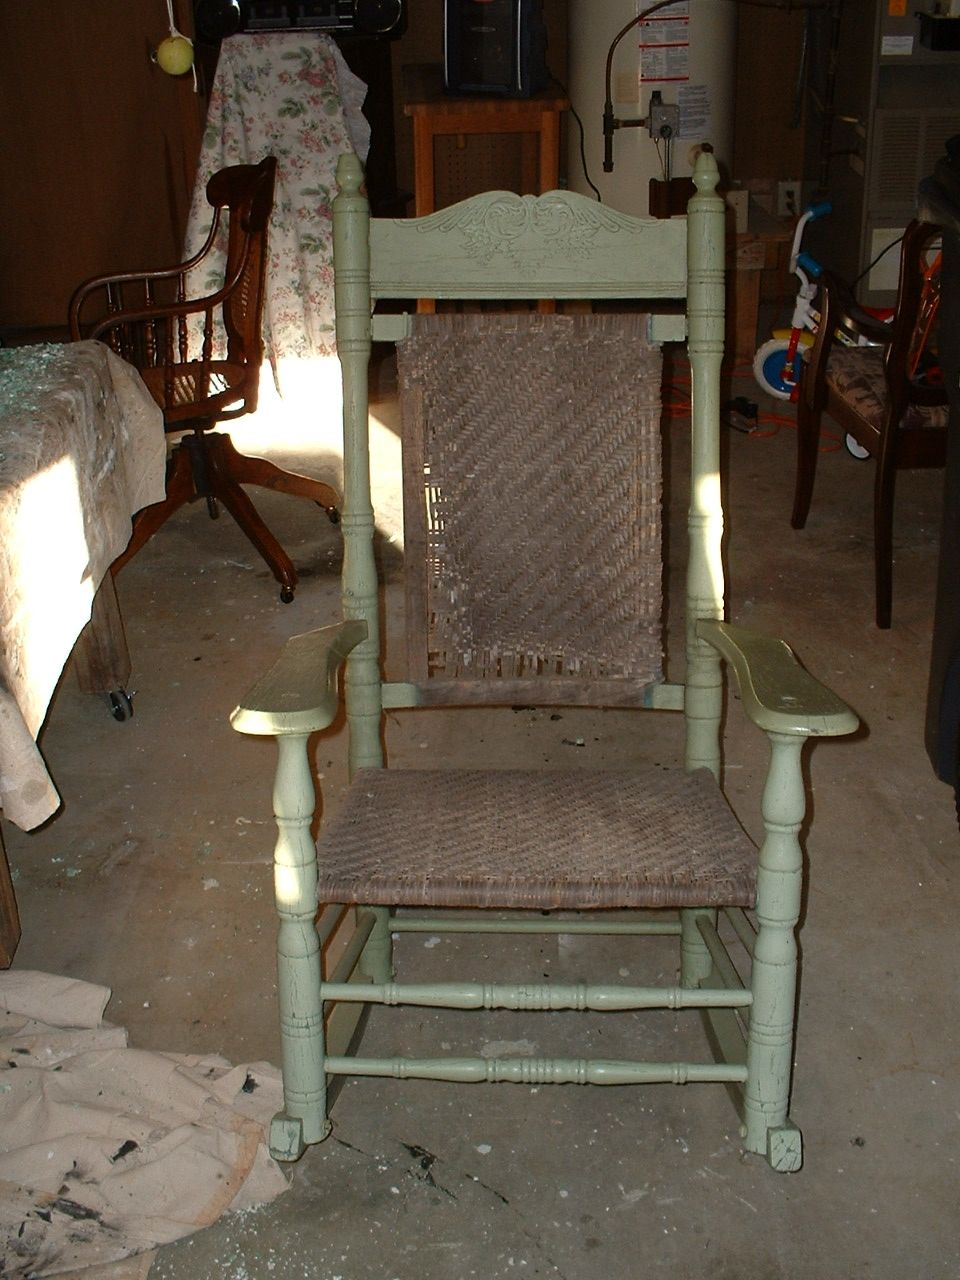 1920 Brumby Rocker before restoration. & 1920 Brumby Rocker before restoration. | Brumby Rocking Chair ...